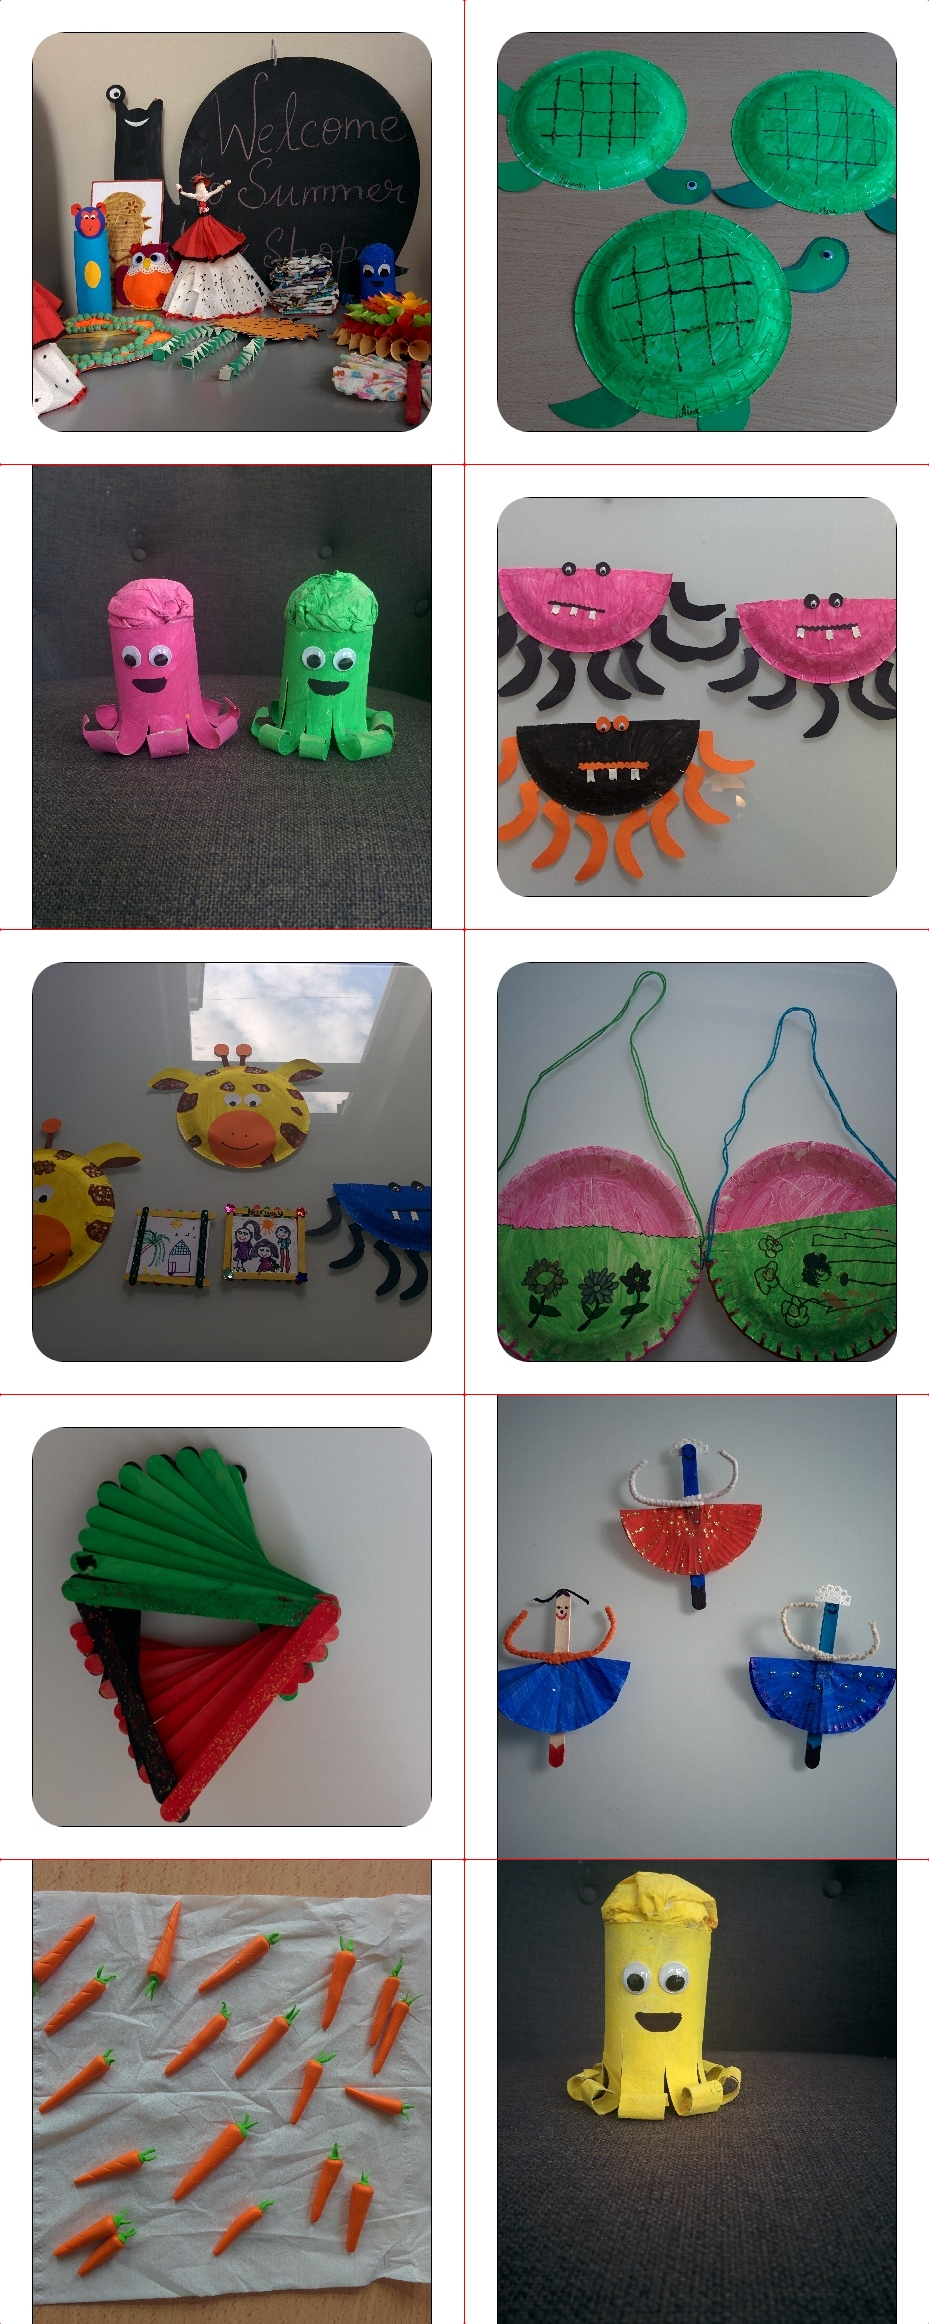 Some of the art & craft work from 2016 workshop